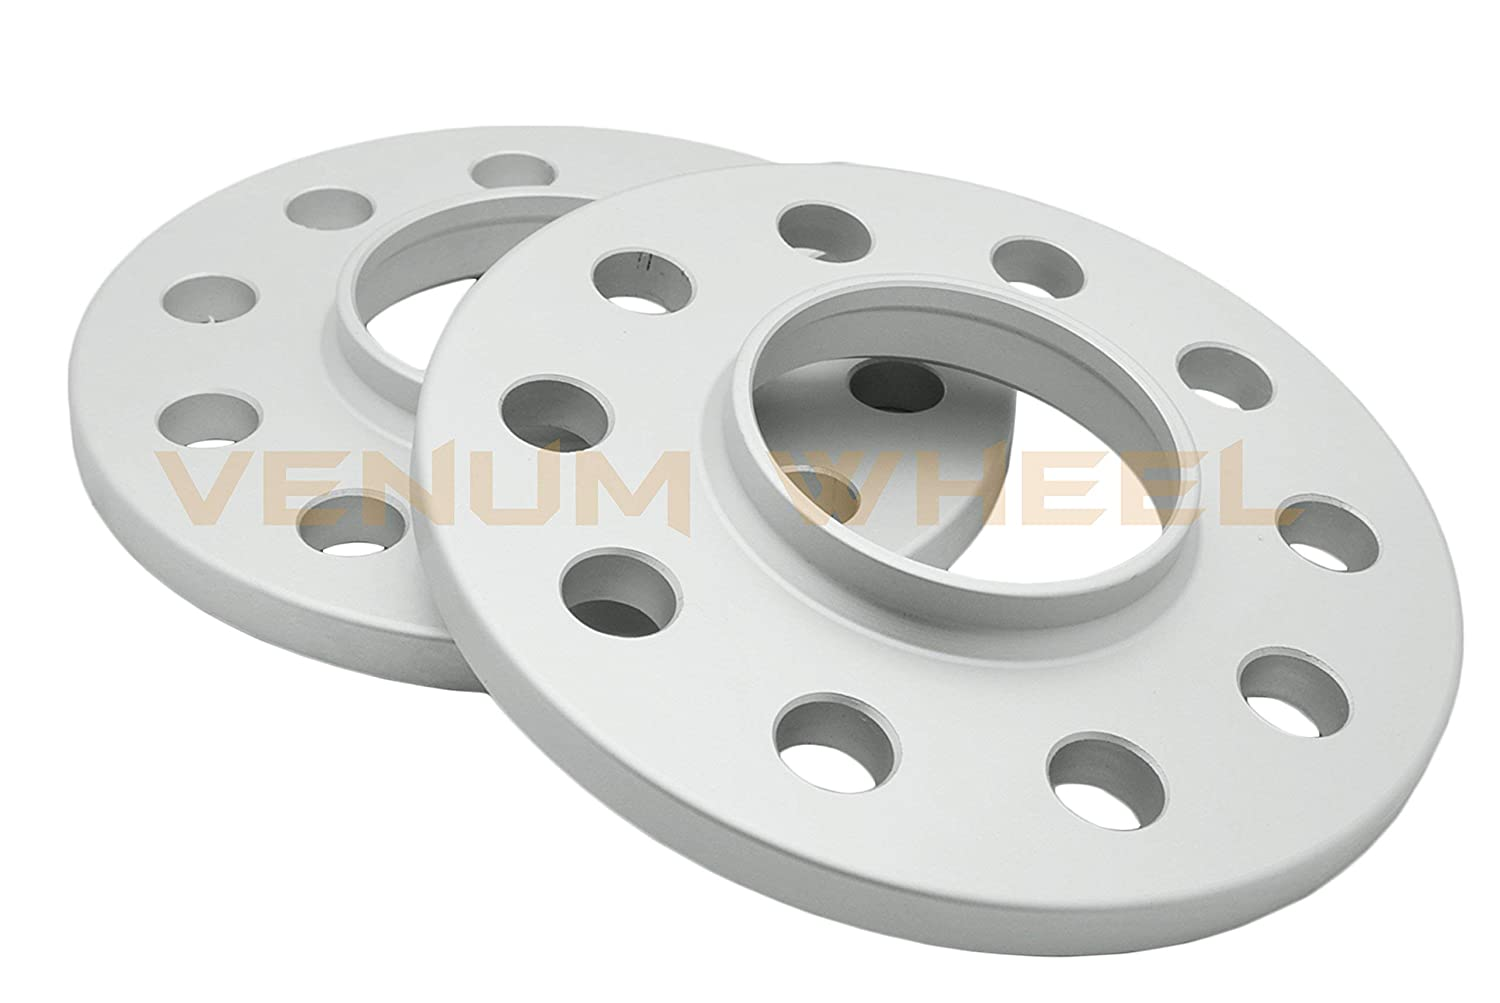 2 Pc Rear 10mm Mercedes Benz 5x112 Spacer Kit 2003-2009 W209 Chasis w//Extended Chrome Lug Bolts 12x1.5 Thread